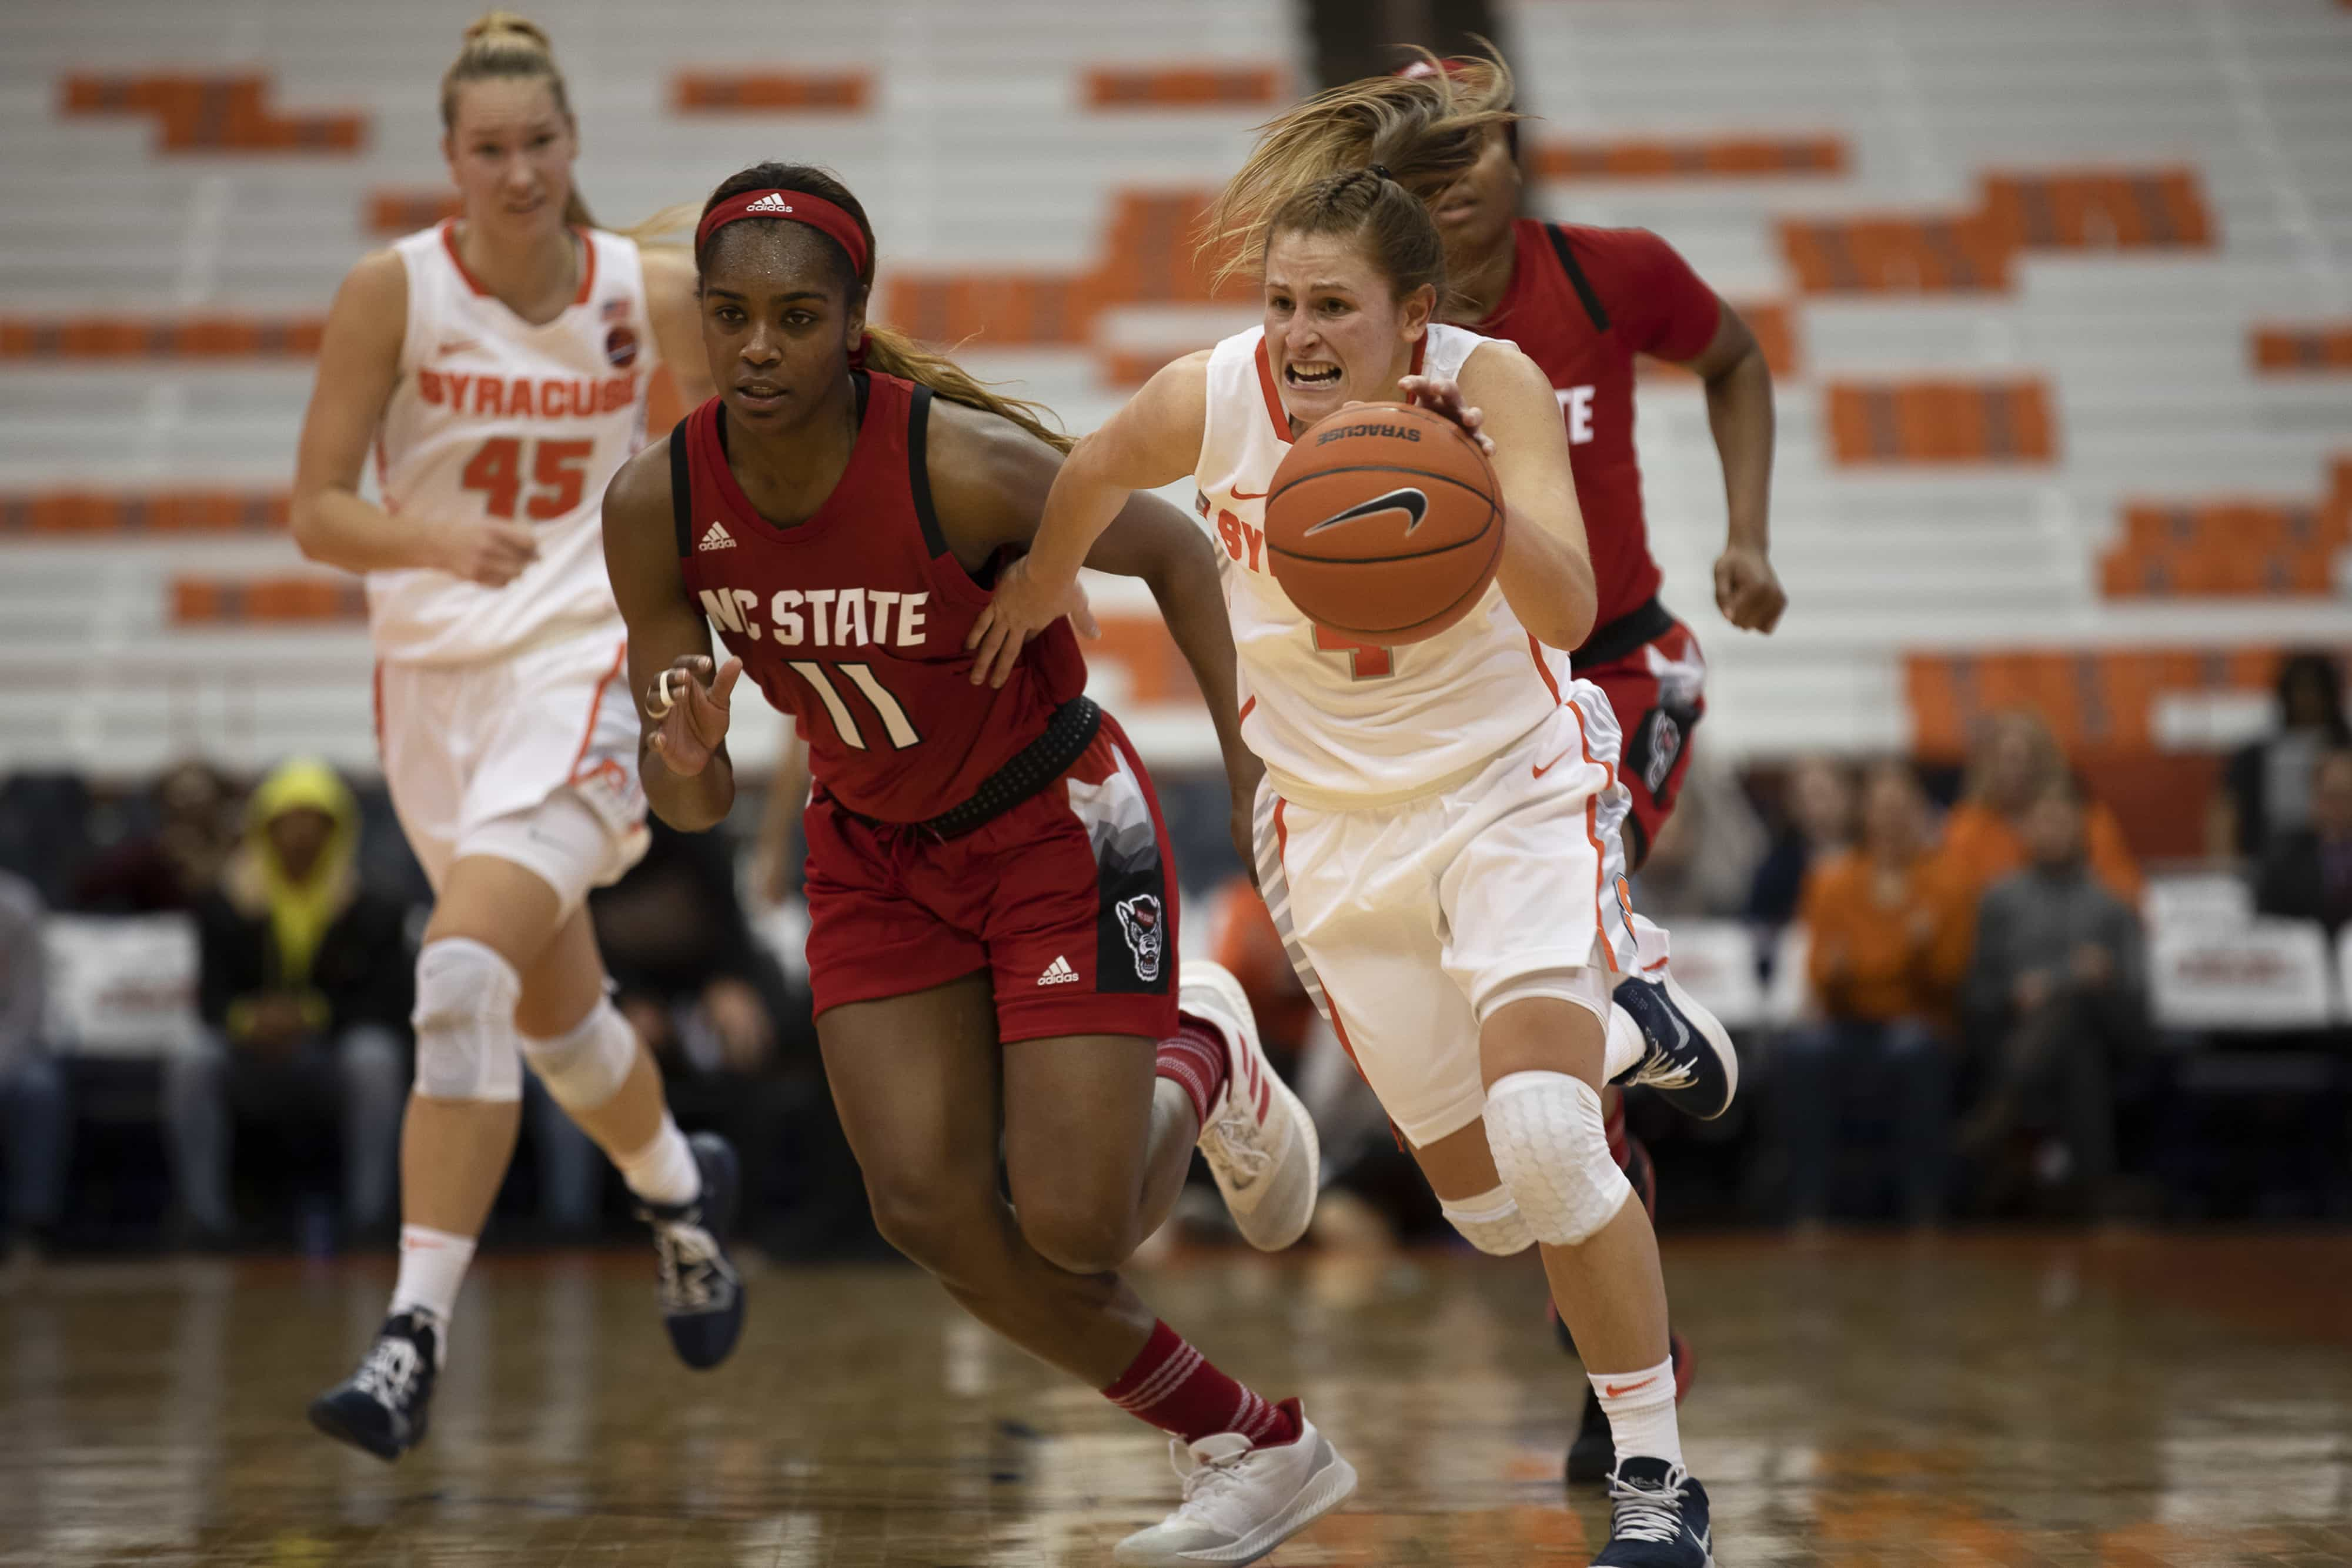 SU vs NC State Women's Basketball